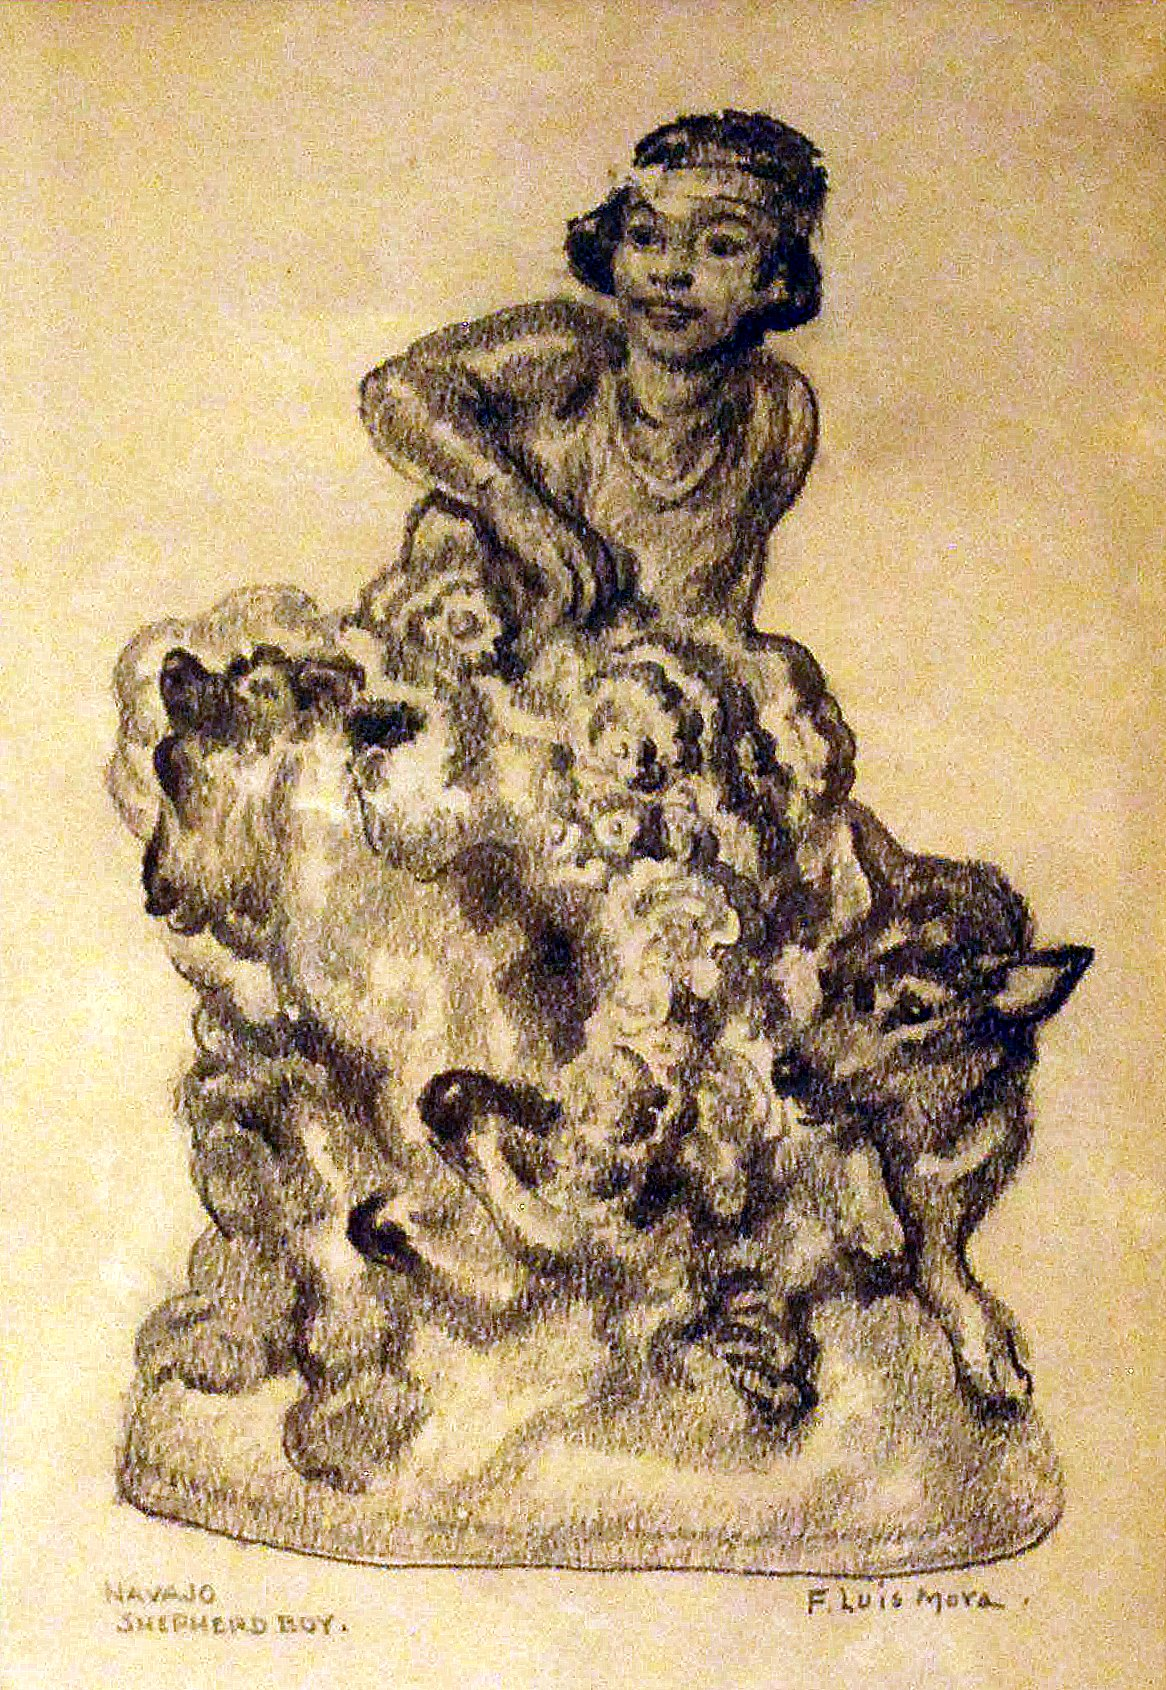 Navajo Shepherd Boy, Study for Cowan Pottery